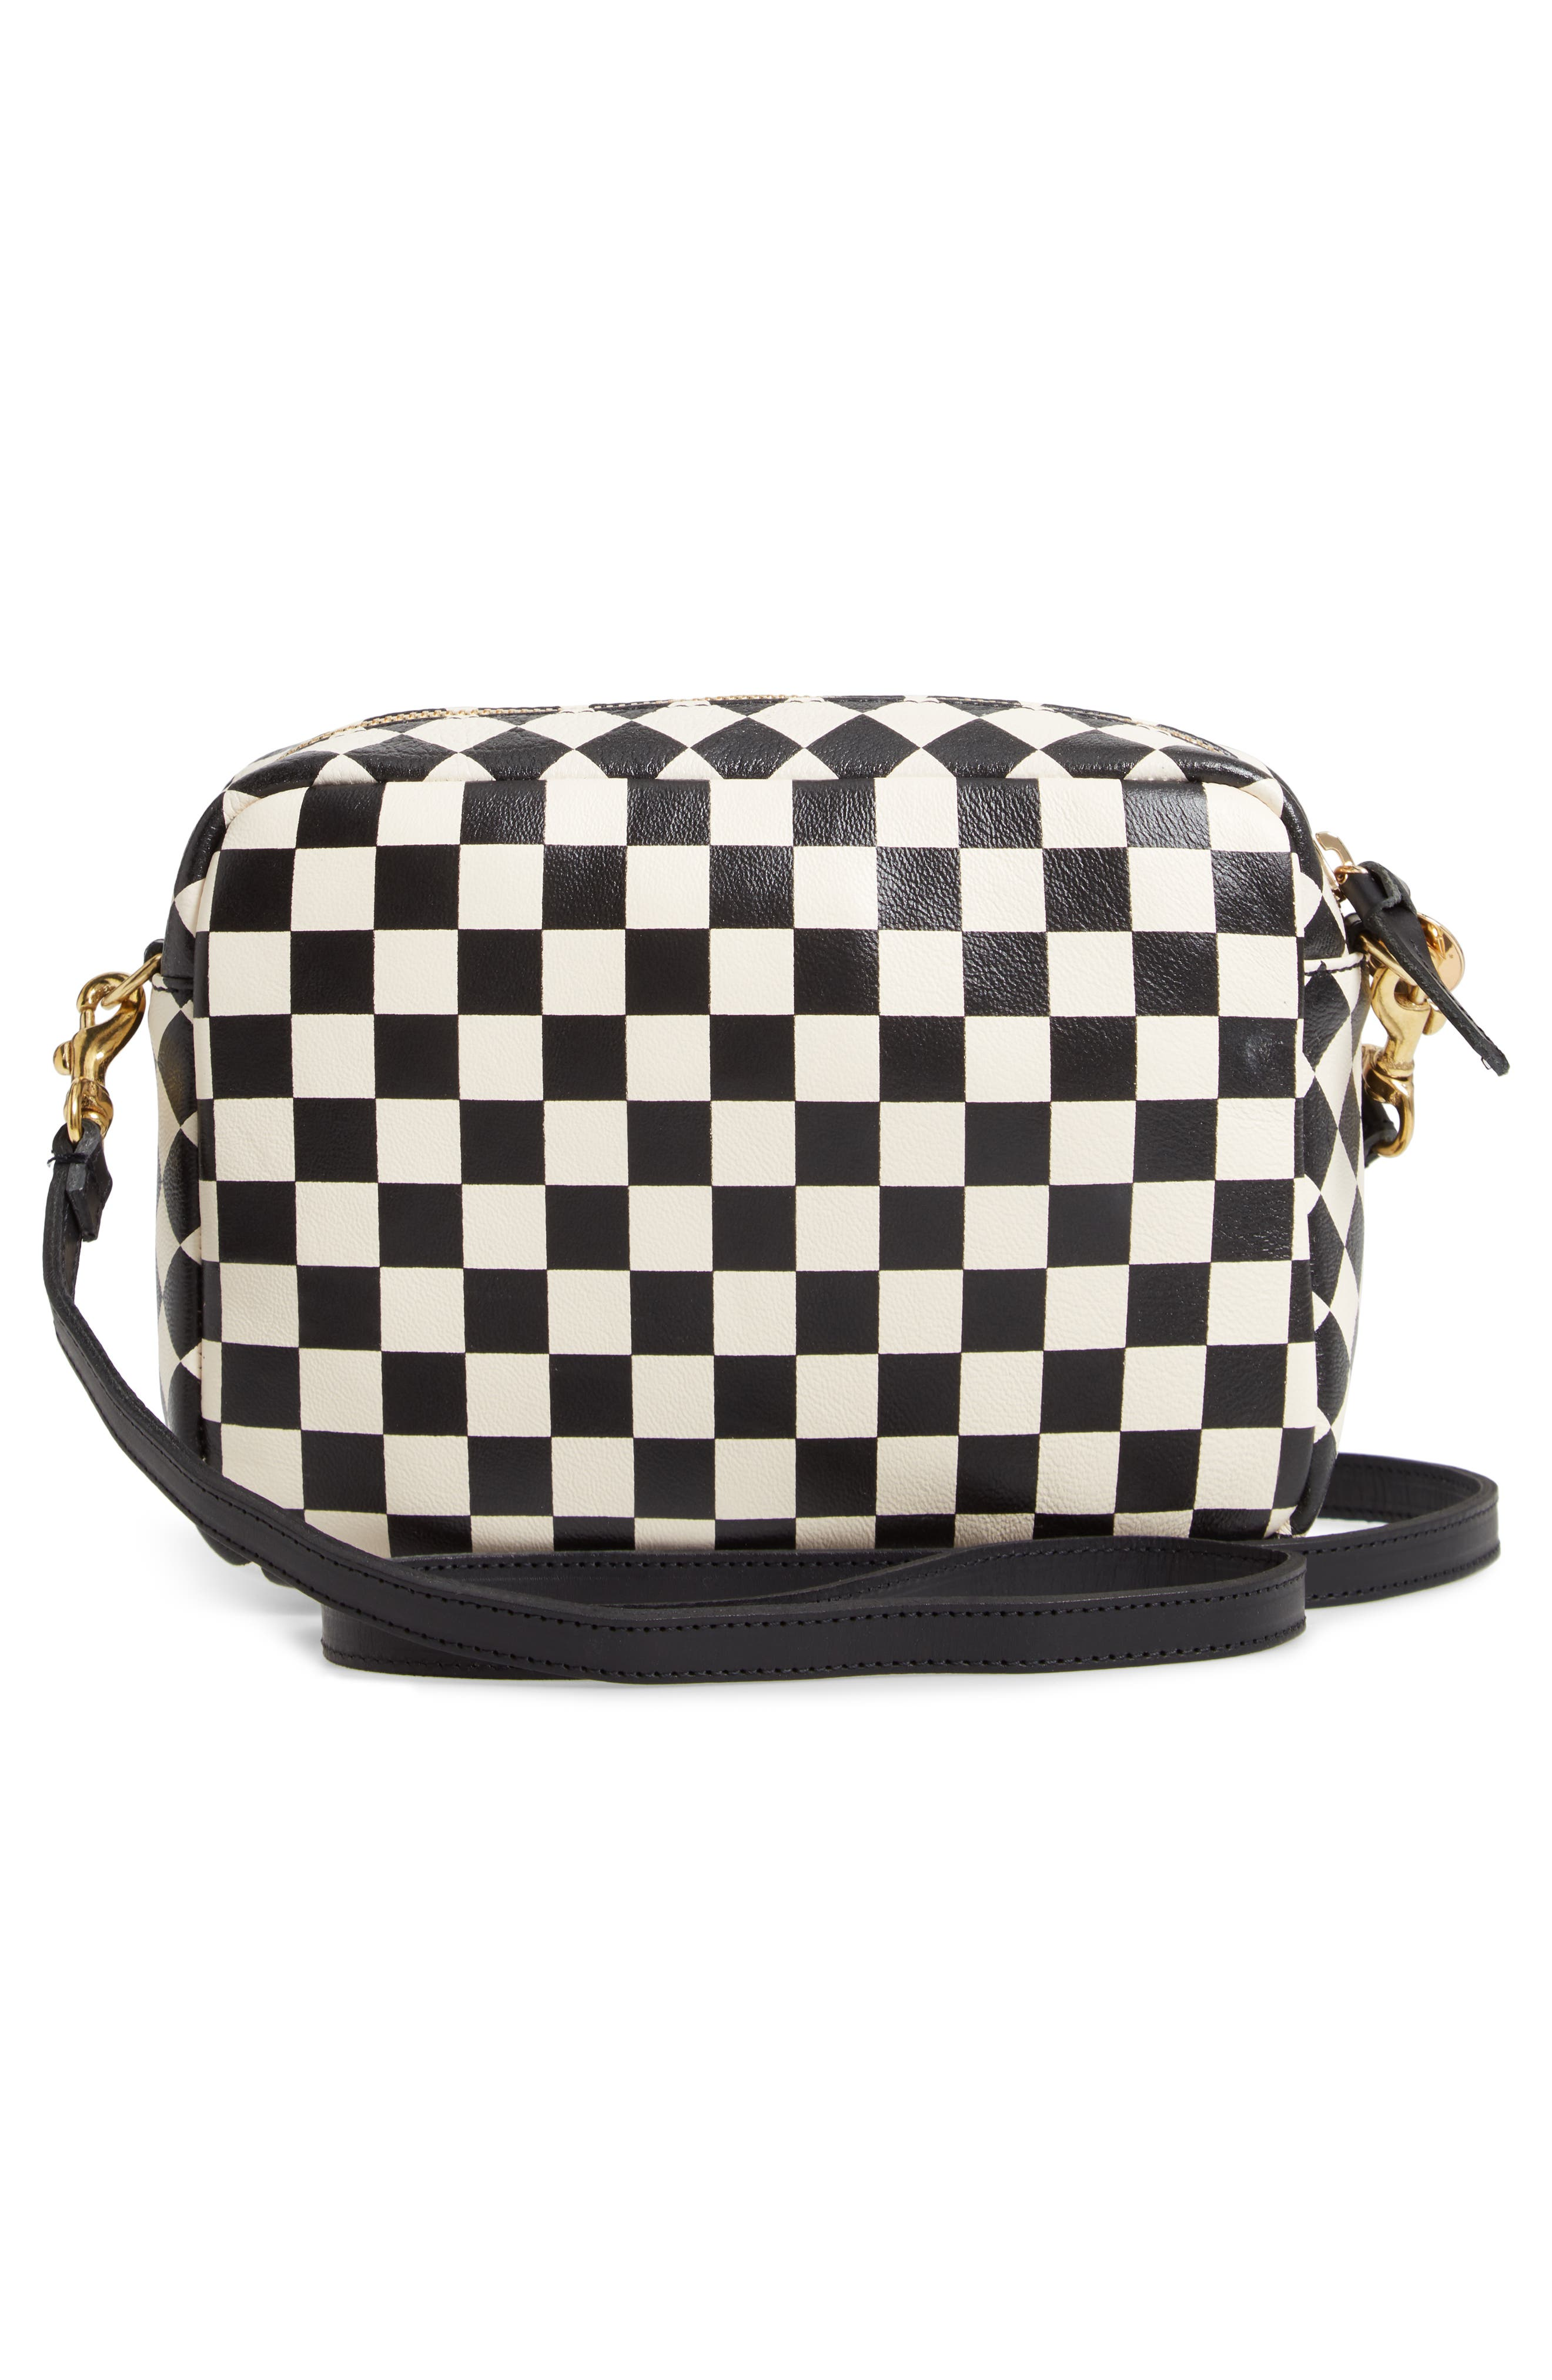 Midi Sac Check Leather Shoulder Bag,                             Alternate thumbnail 3, color,                             CREAM/ BLACK CHECKERS